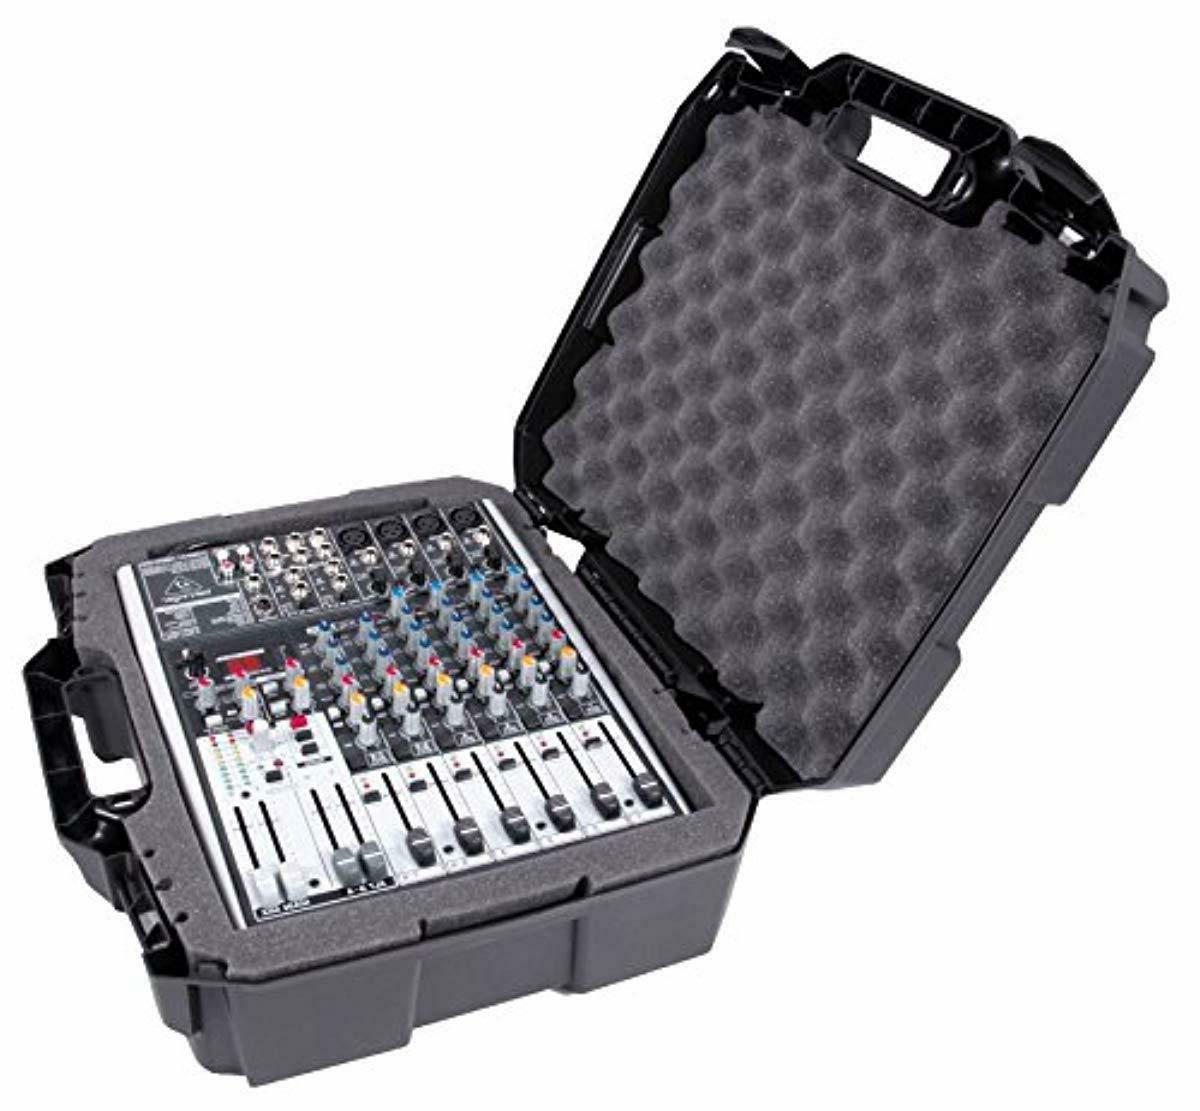 17 inch audio mixer carrying case compatible